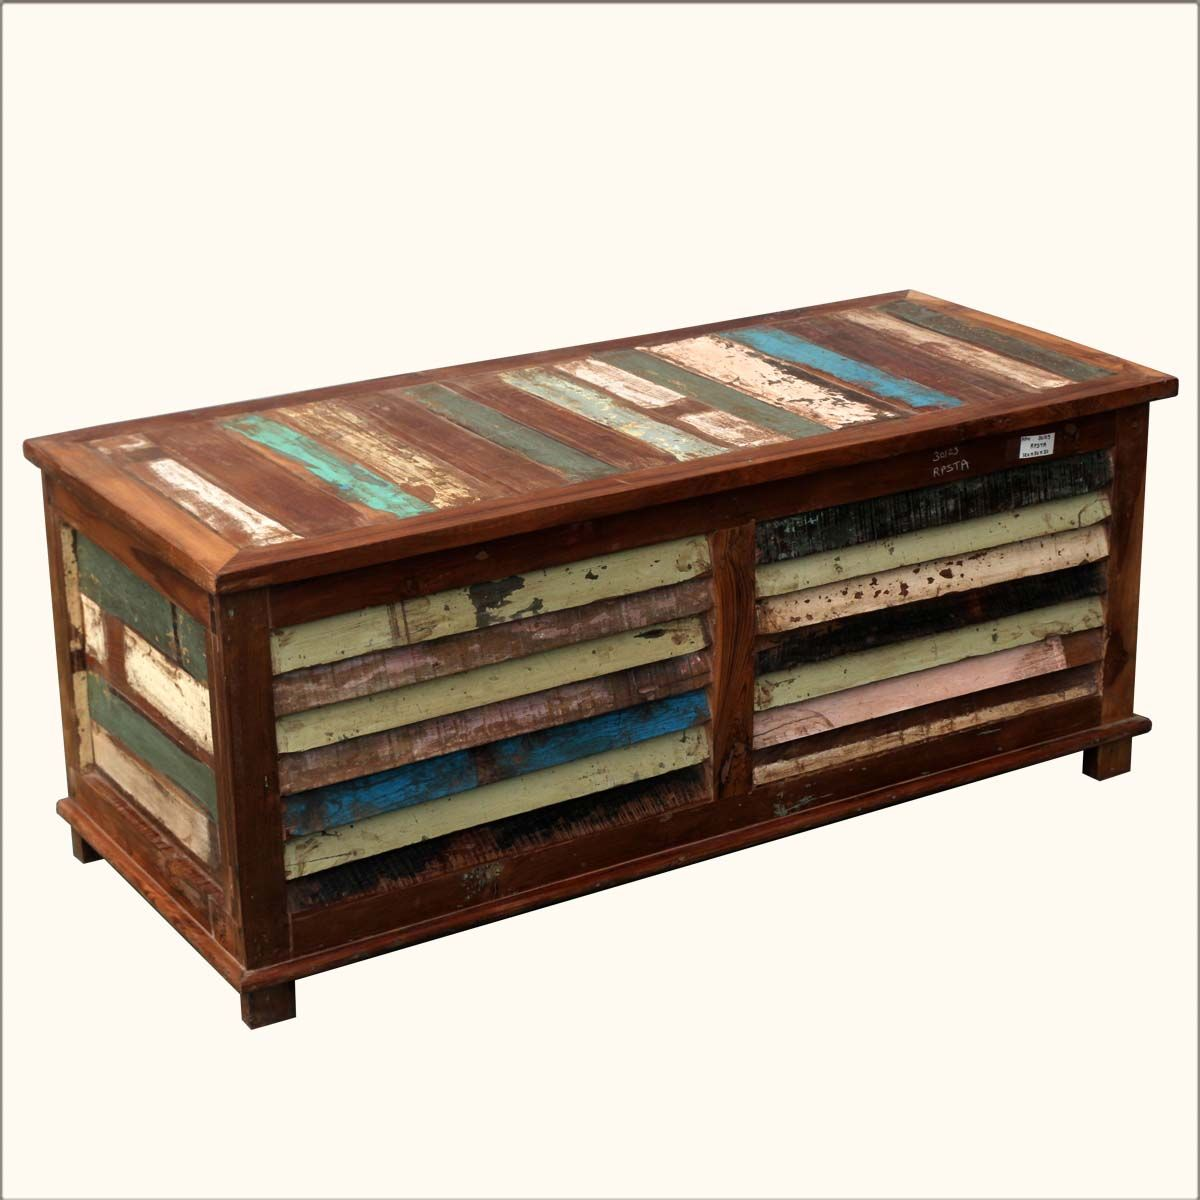 Rustic Reclaimed Wood Multi-Color Coffee Table Storage Trunk Chest - Rustic Reclaimed Wood Multi-Color Coffee Table Storage Trunk Chest